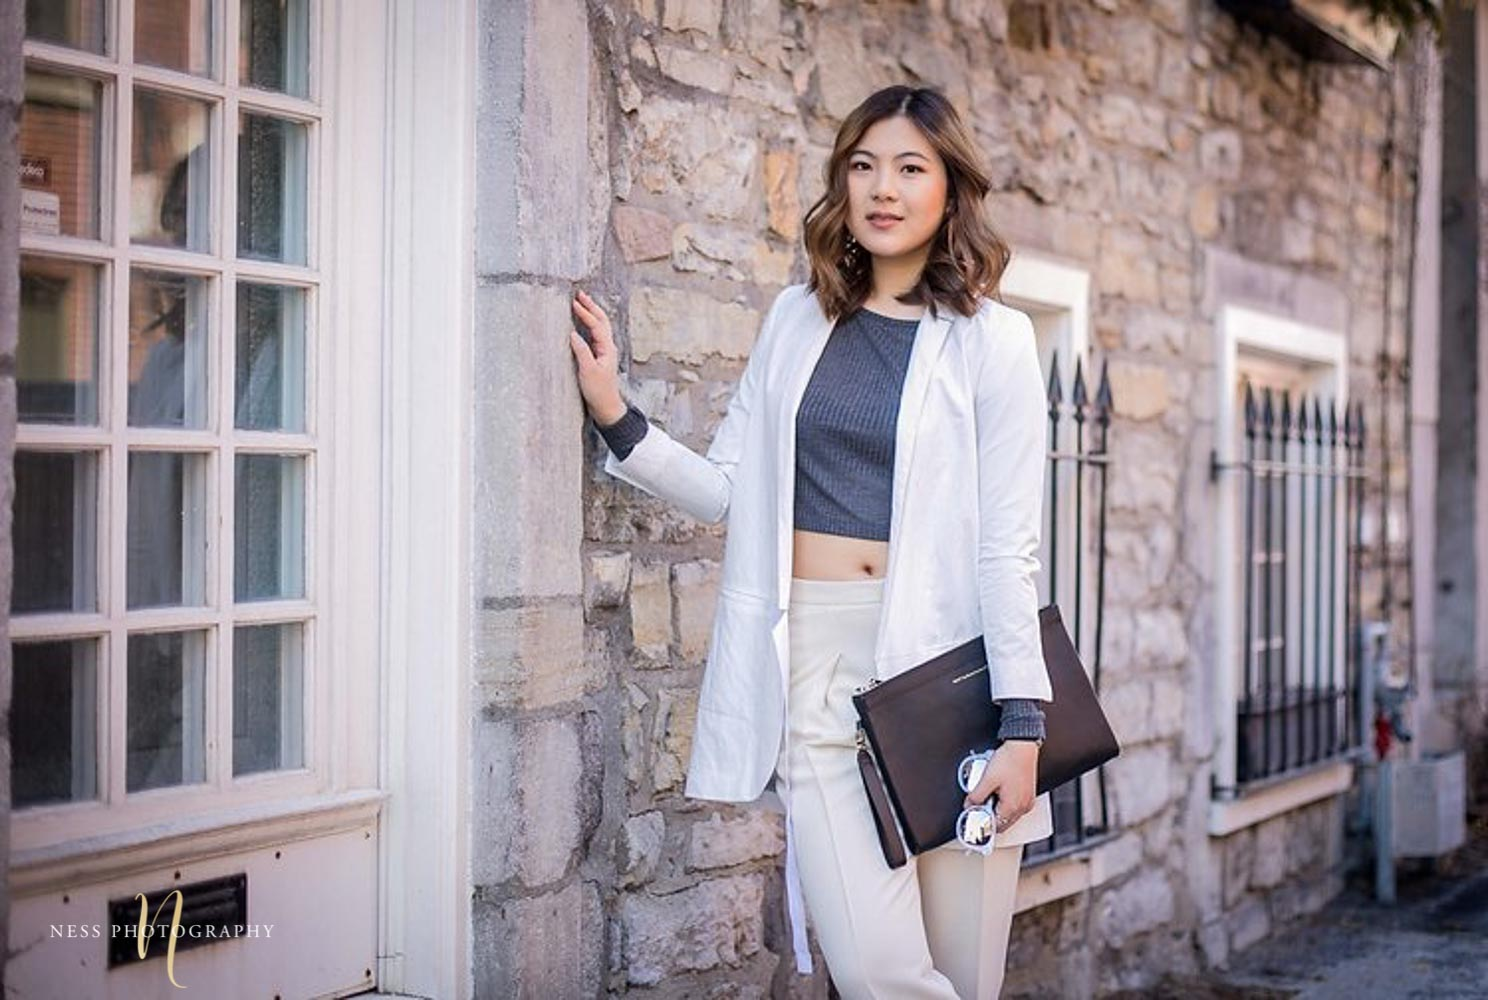 Heydahye portrait in front of old montreal brick walls and windows